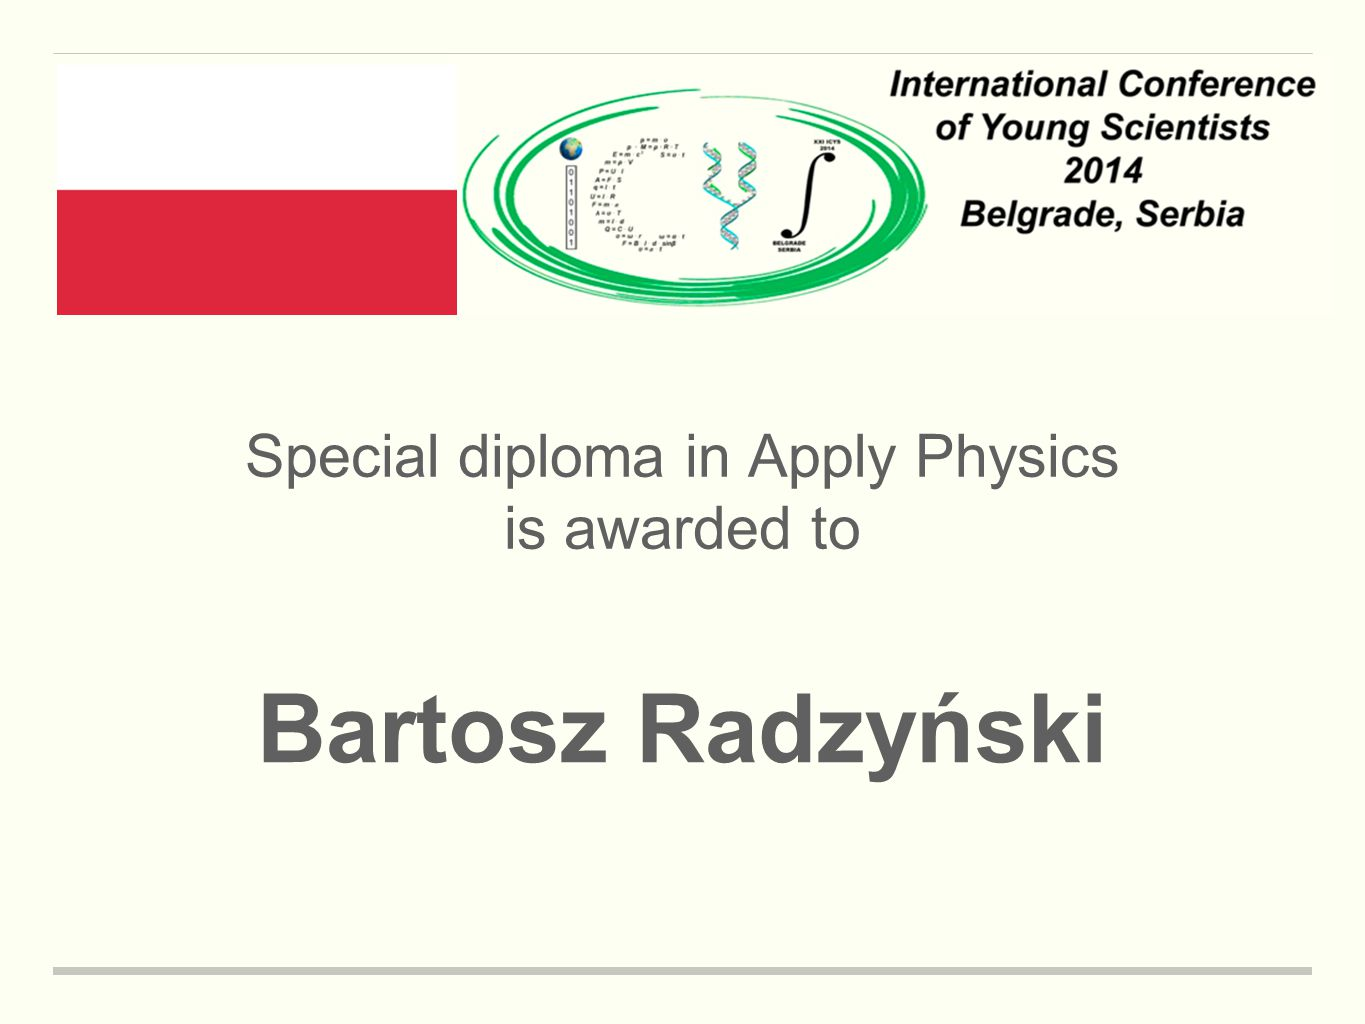 Special diploma in Apply Physics is awarded to Bartosz Radzyński